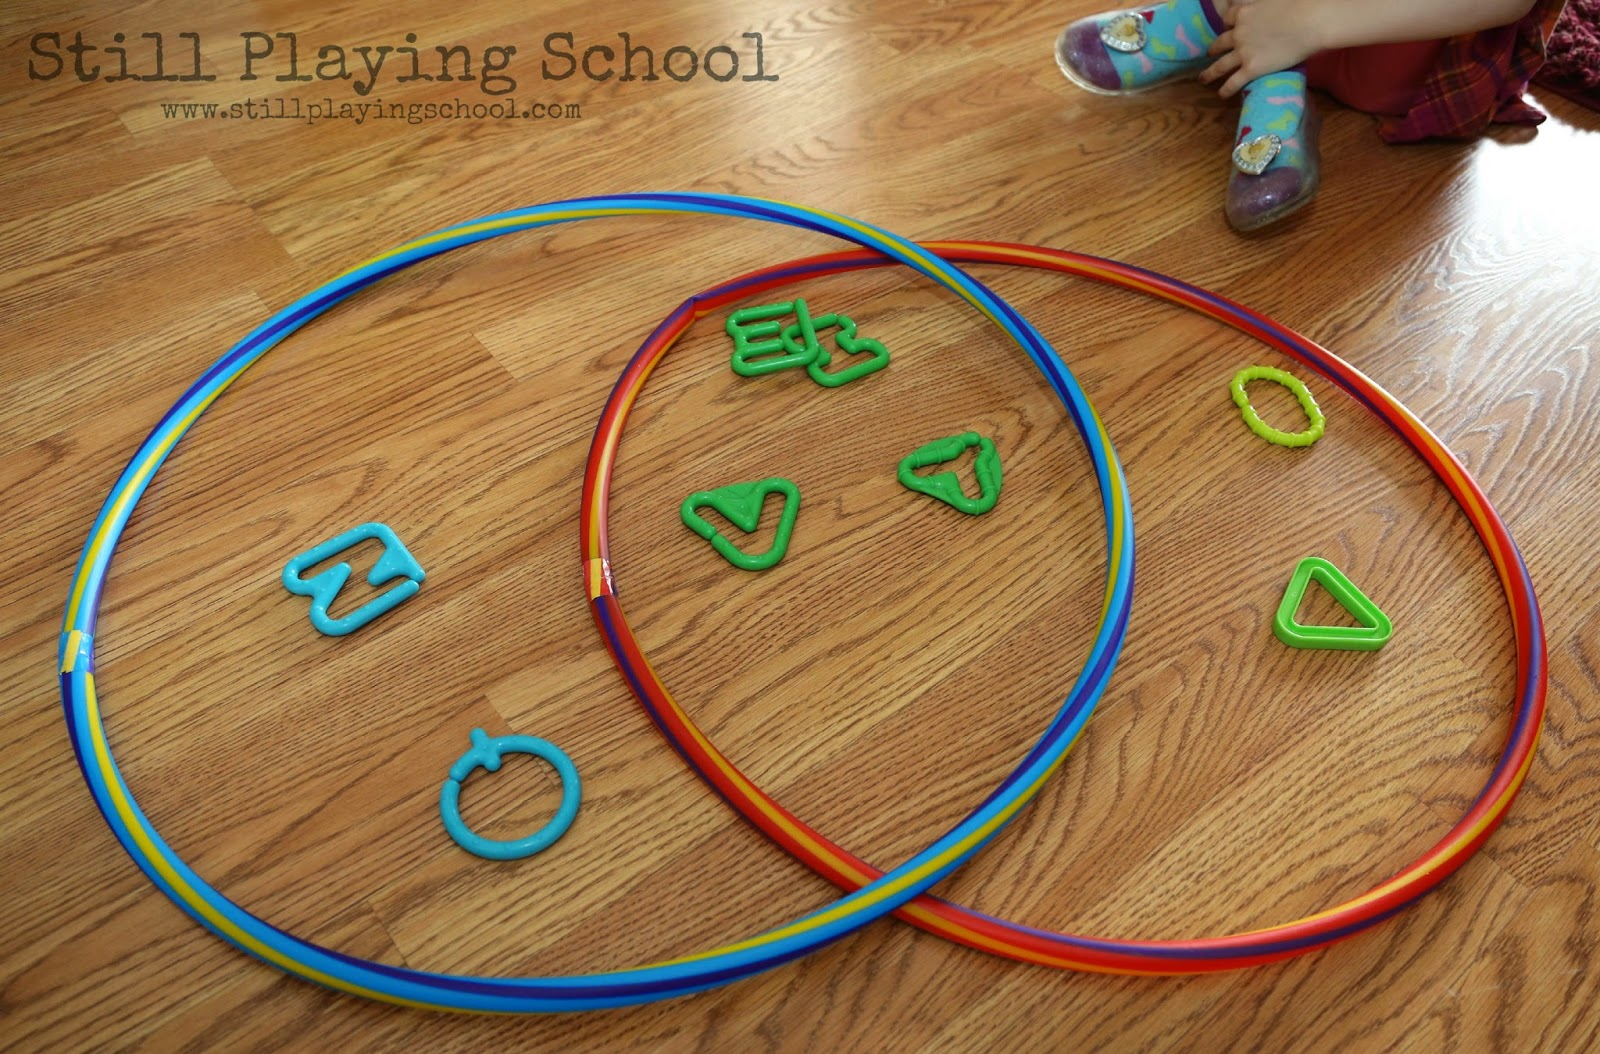 Hula hoop venn diagram sorting still playing school the blue hoop contained bumpy links and the red hoop contained oval links she caught on quickly and wanted to sort them herself pooptronica Gallery